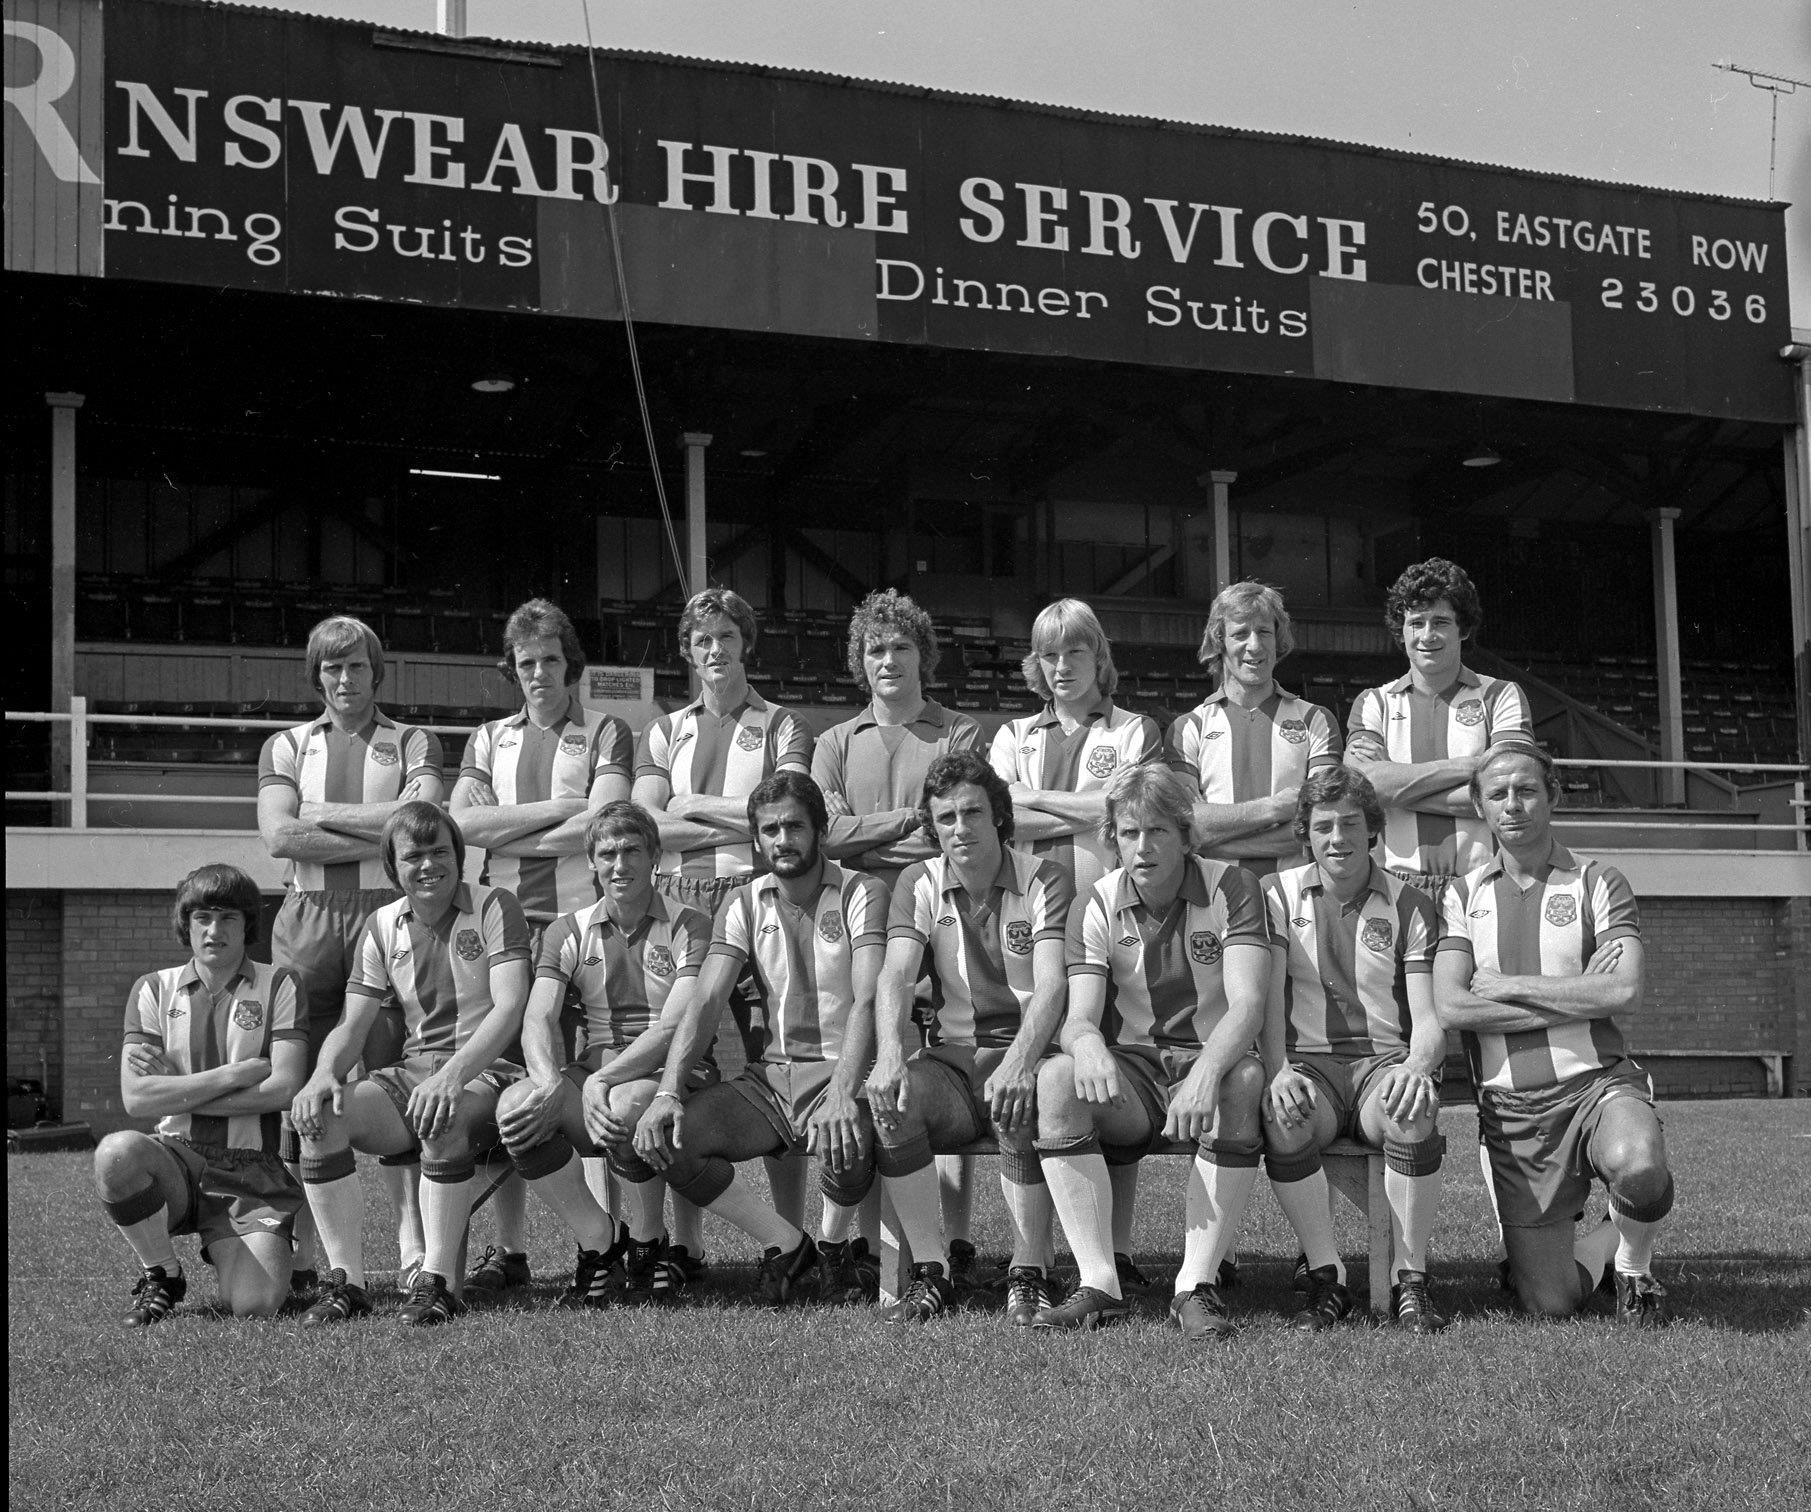 Chester FC's 1977/78 squad, which Alan Oakes led to fifth in the old Division Three.